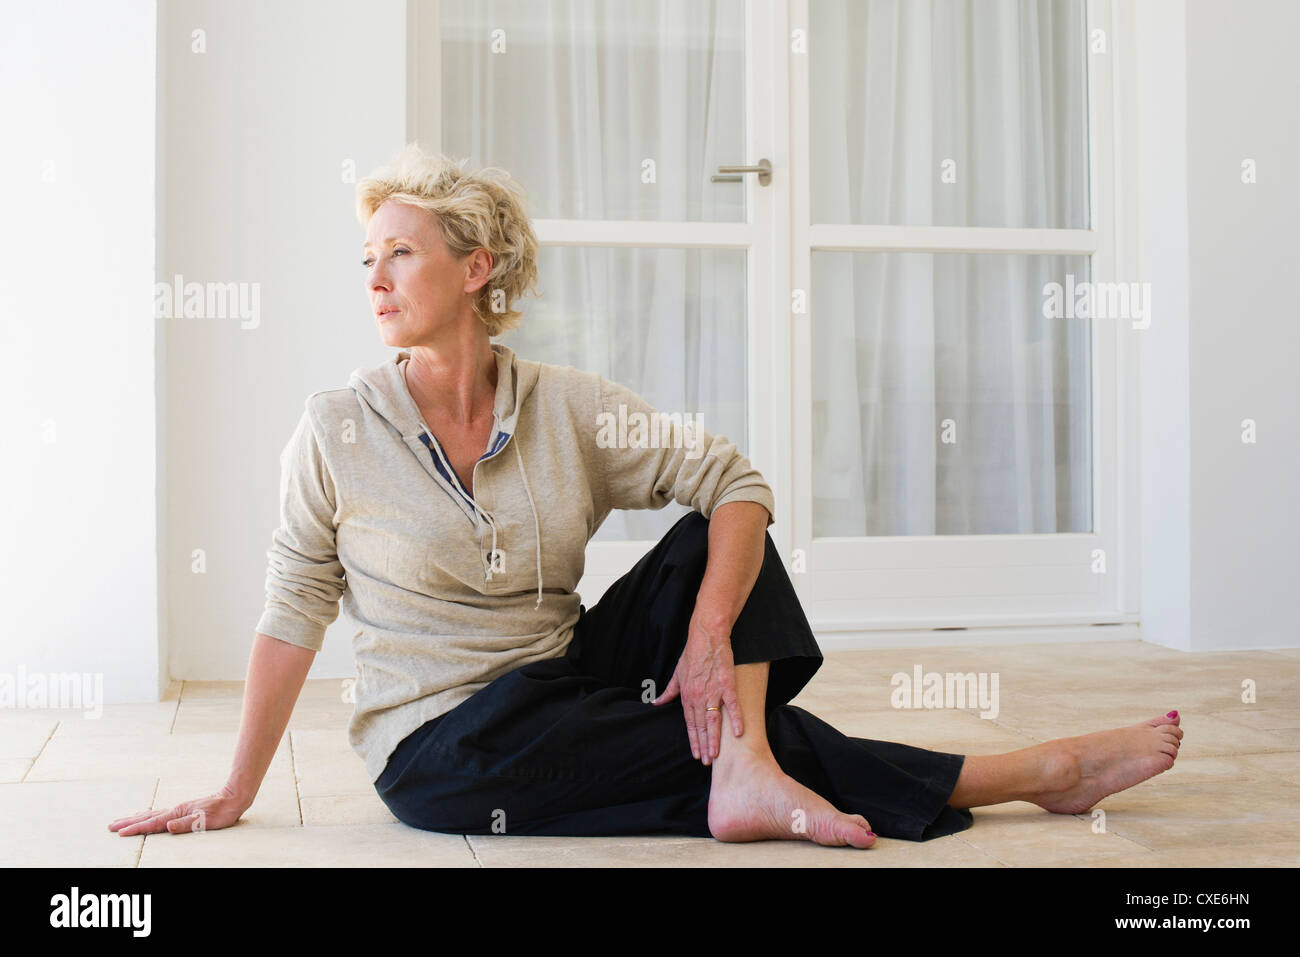 Mature woman sitting on floor doing spinal twist - Stock Image